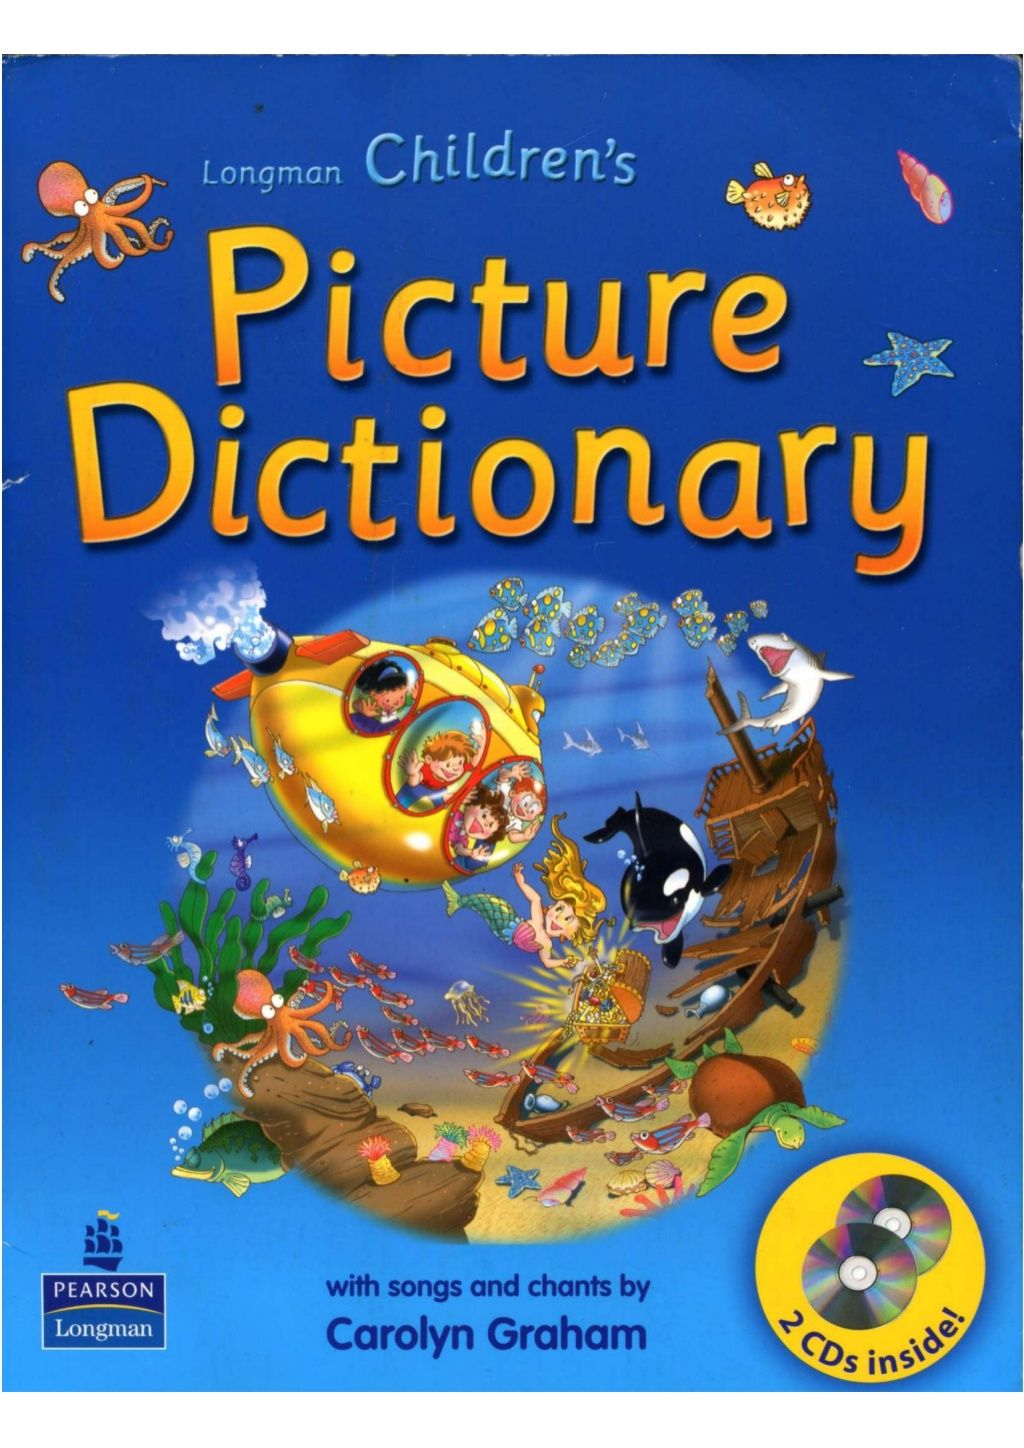 Longman Childrens Picture Dictionary By Hundred Anh Via Slideshare